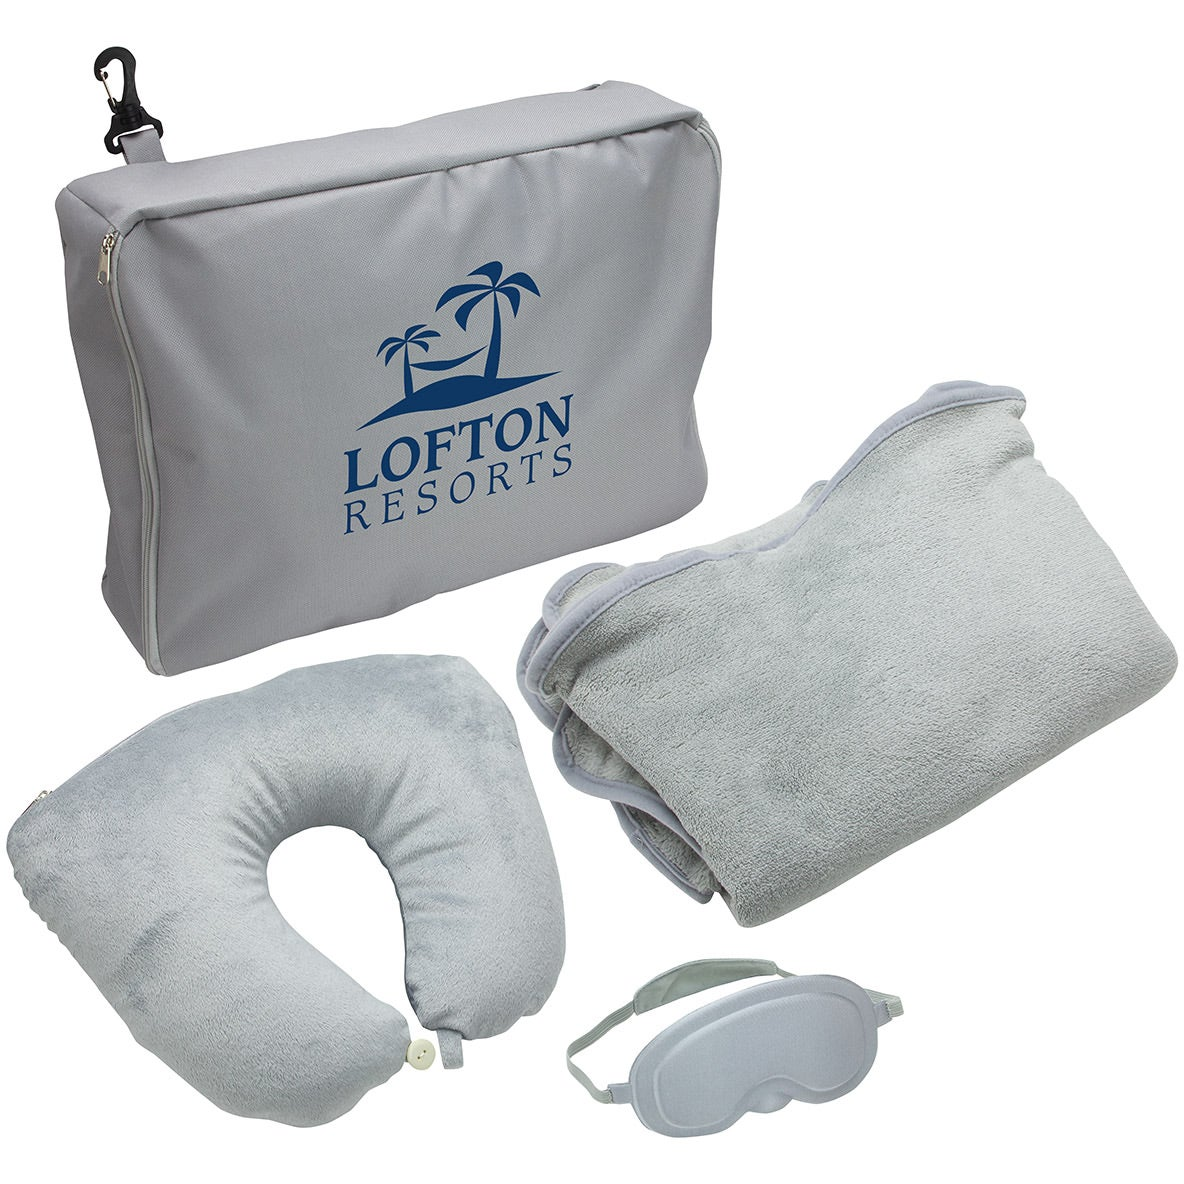 Promotional 3 Piece Travel Pillow And Blanket Sets With Custom Logo